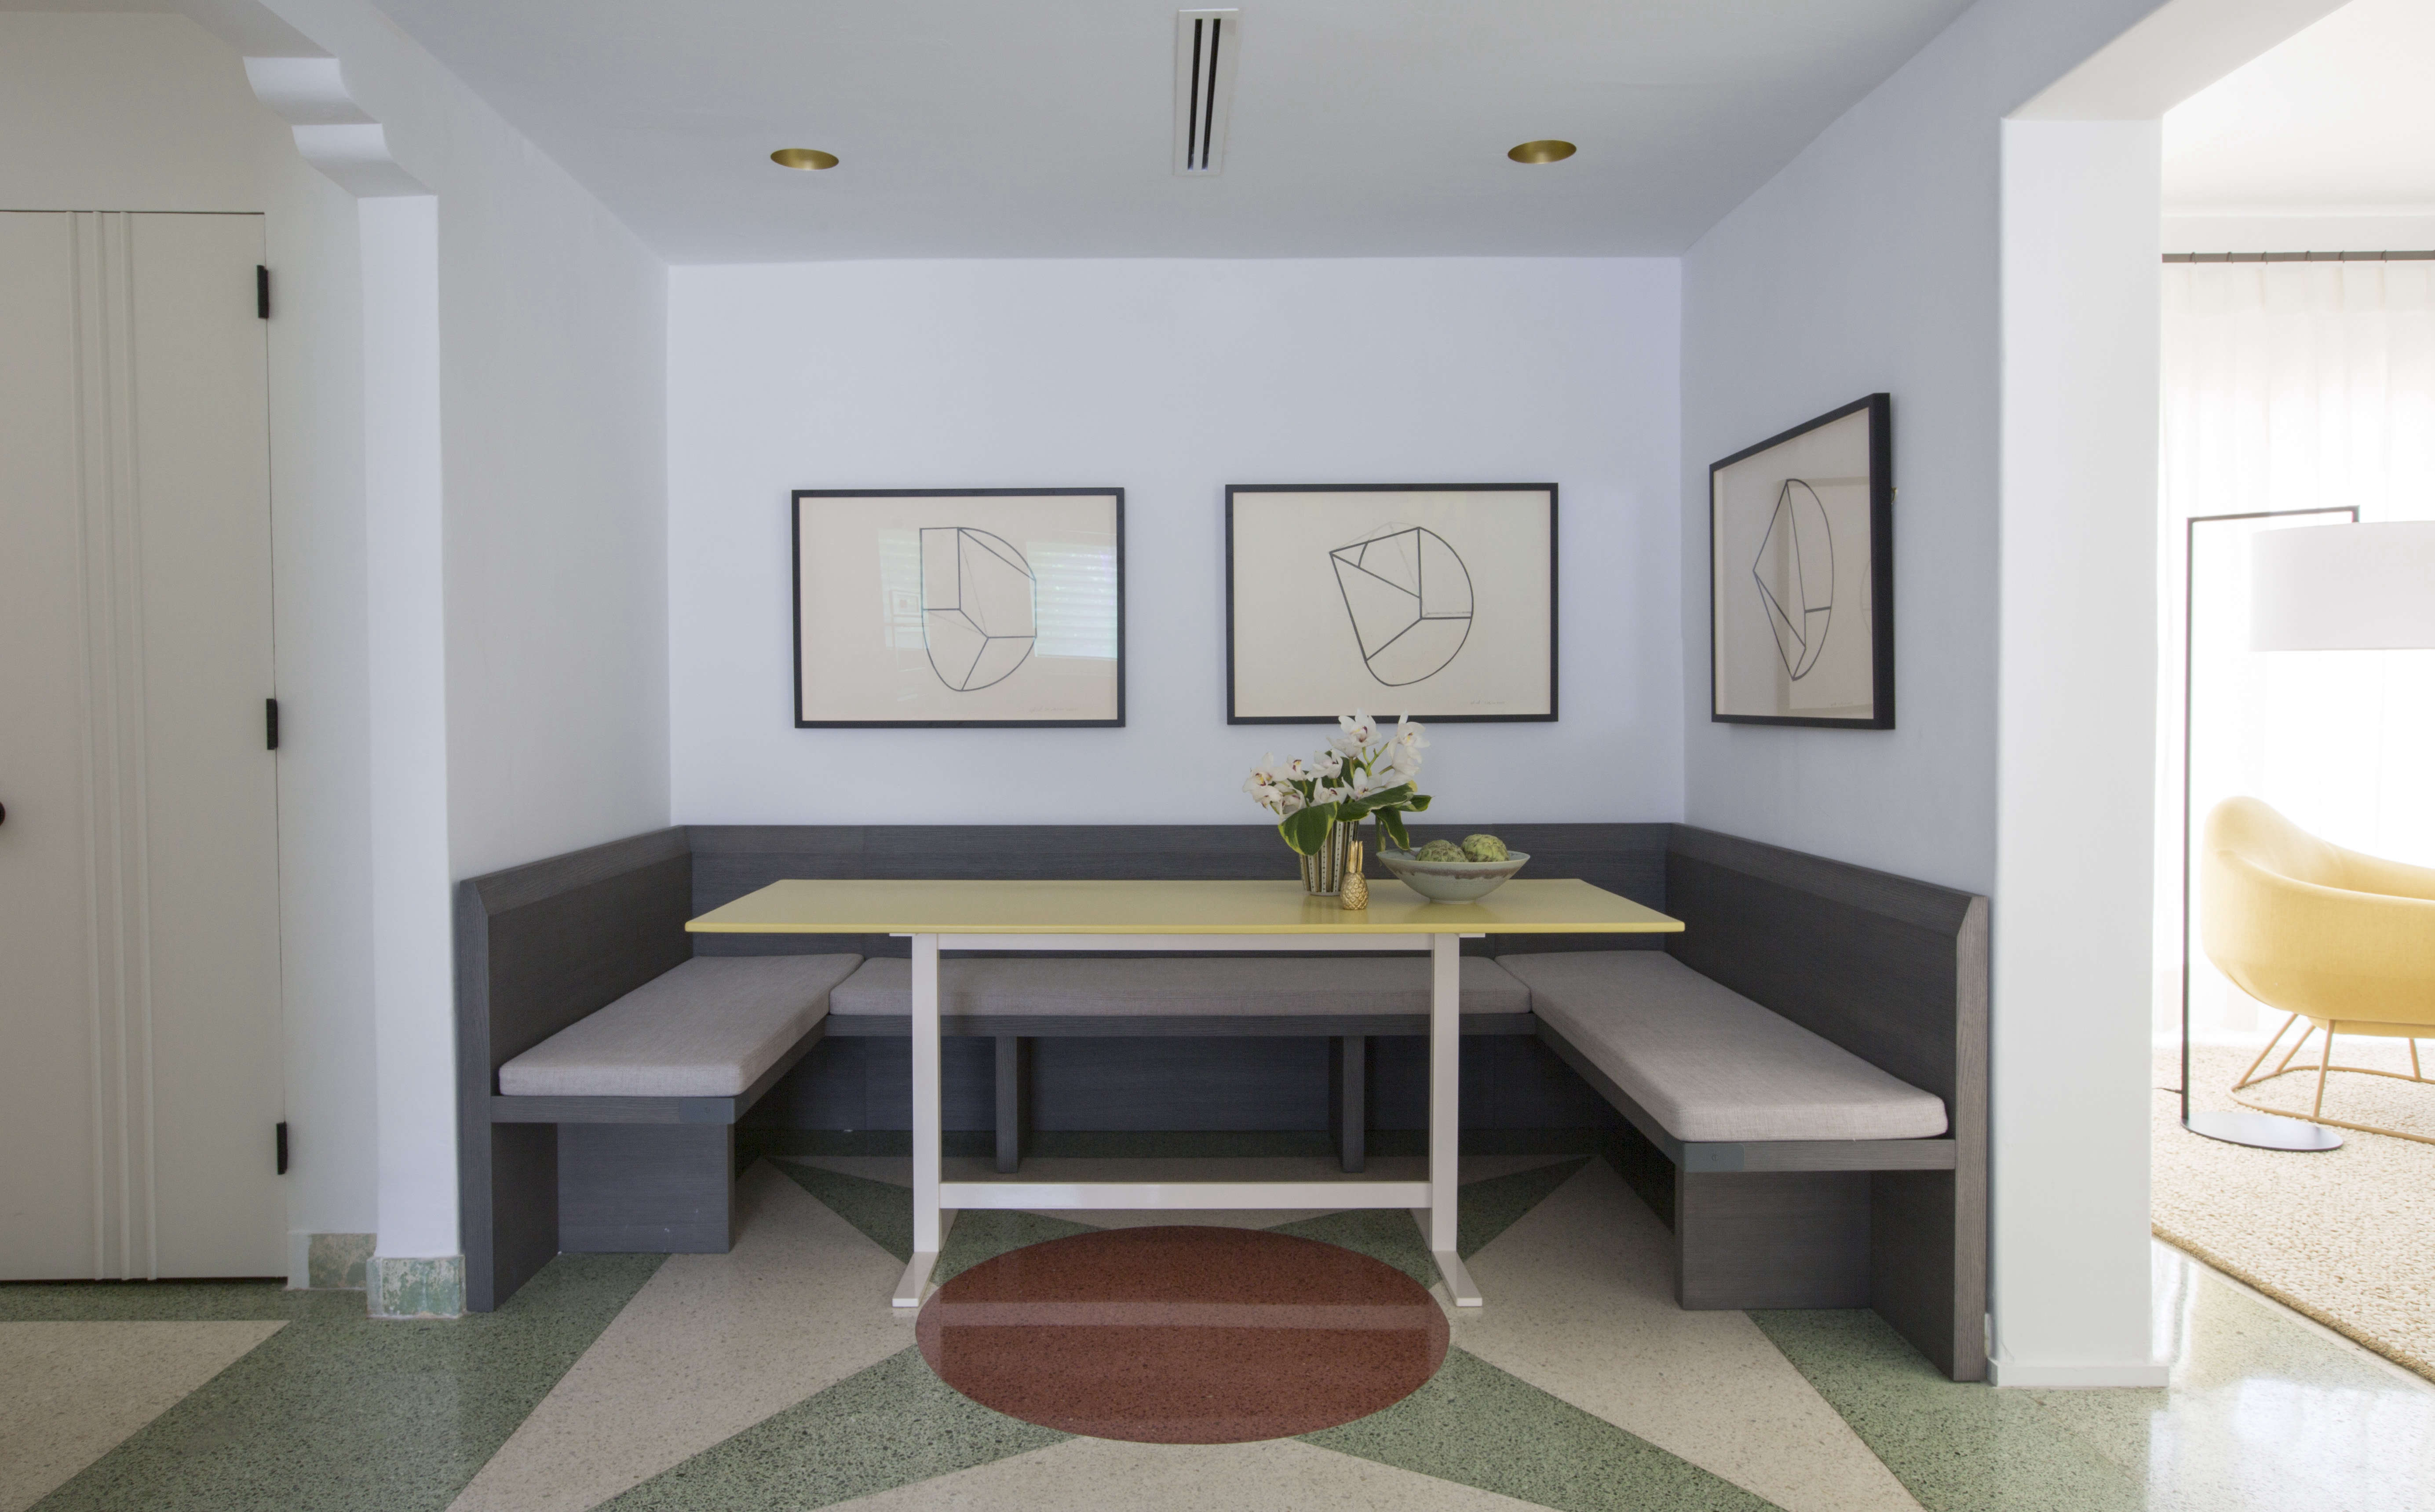 Breakfast nook in Miami art deco villa remodel by Stephan Weishaupt, owner of Avenue Road, Max-Zambelli-photo   Remodelista